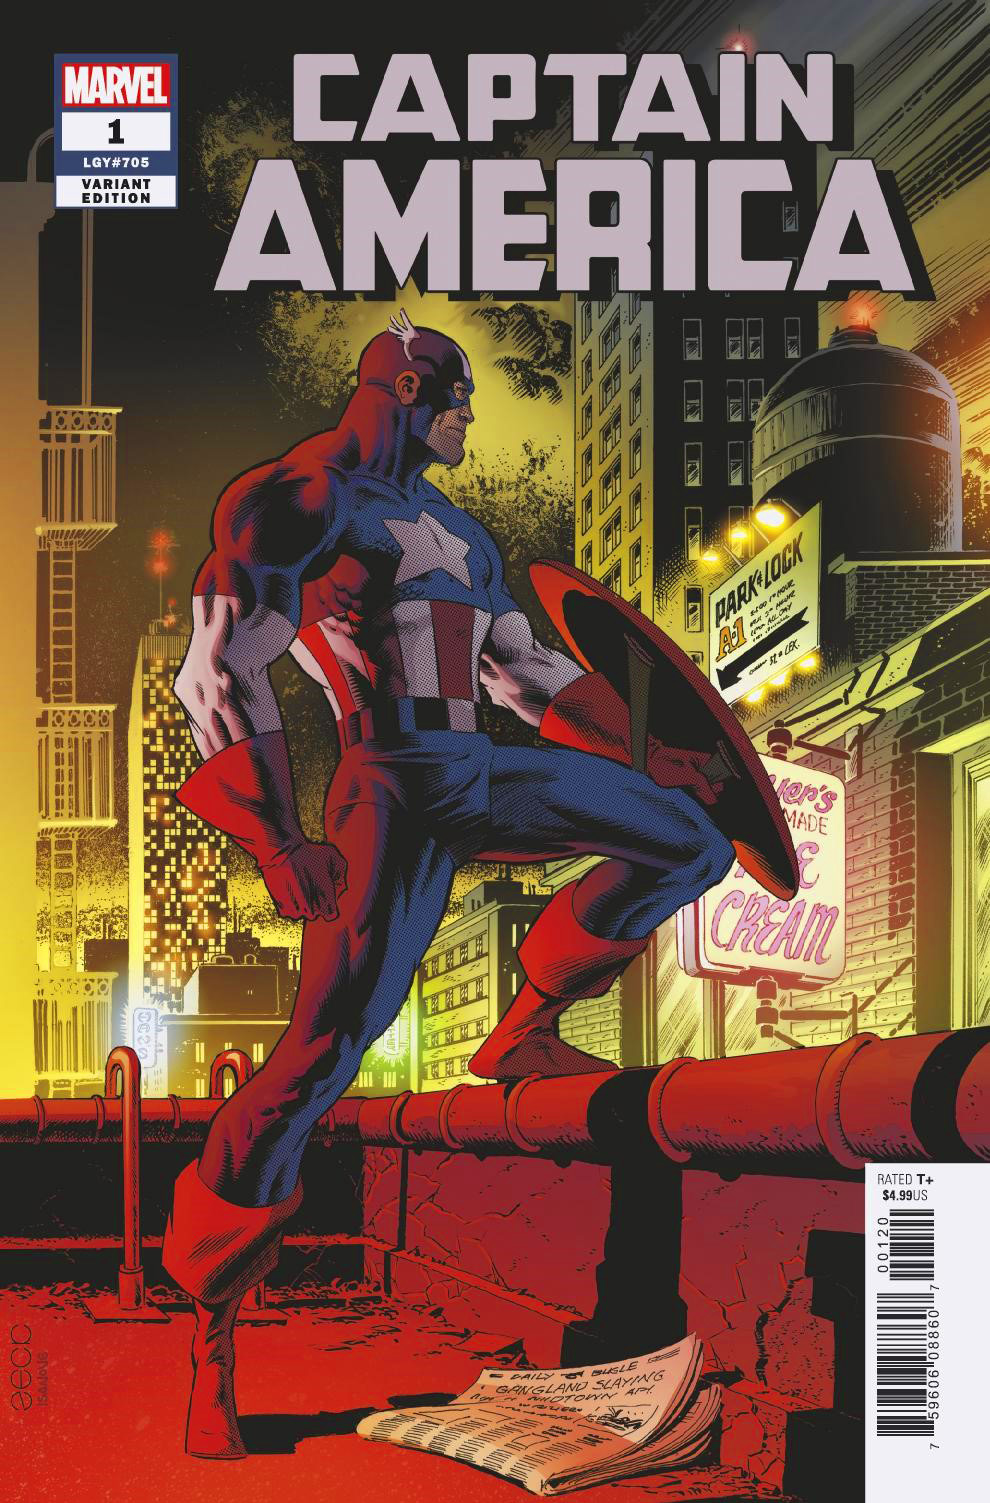 Captain America #1 Mike Zeck variant cover.